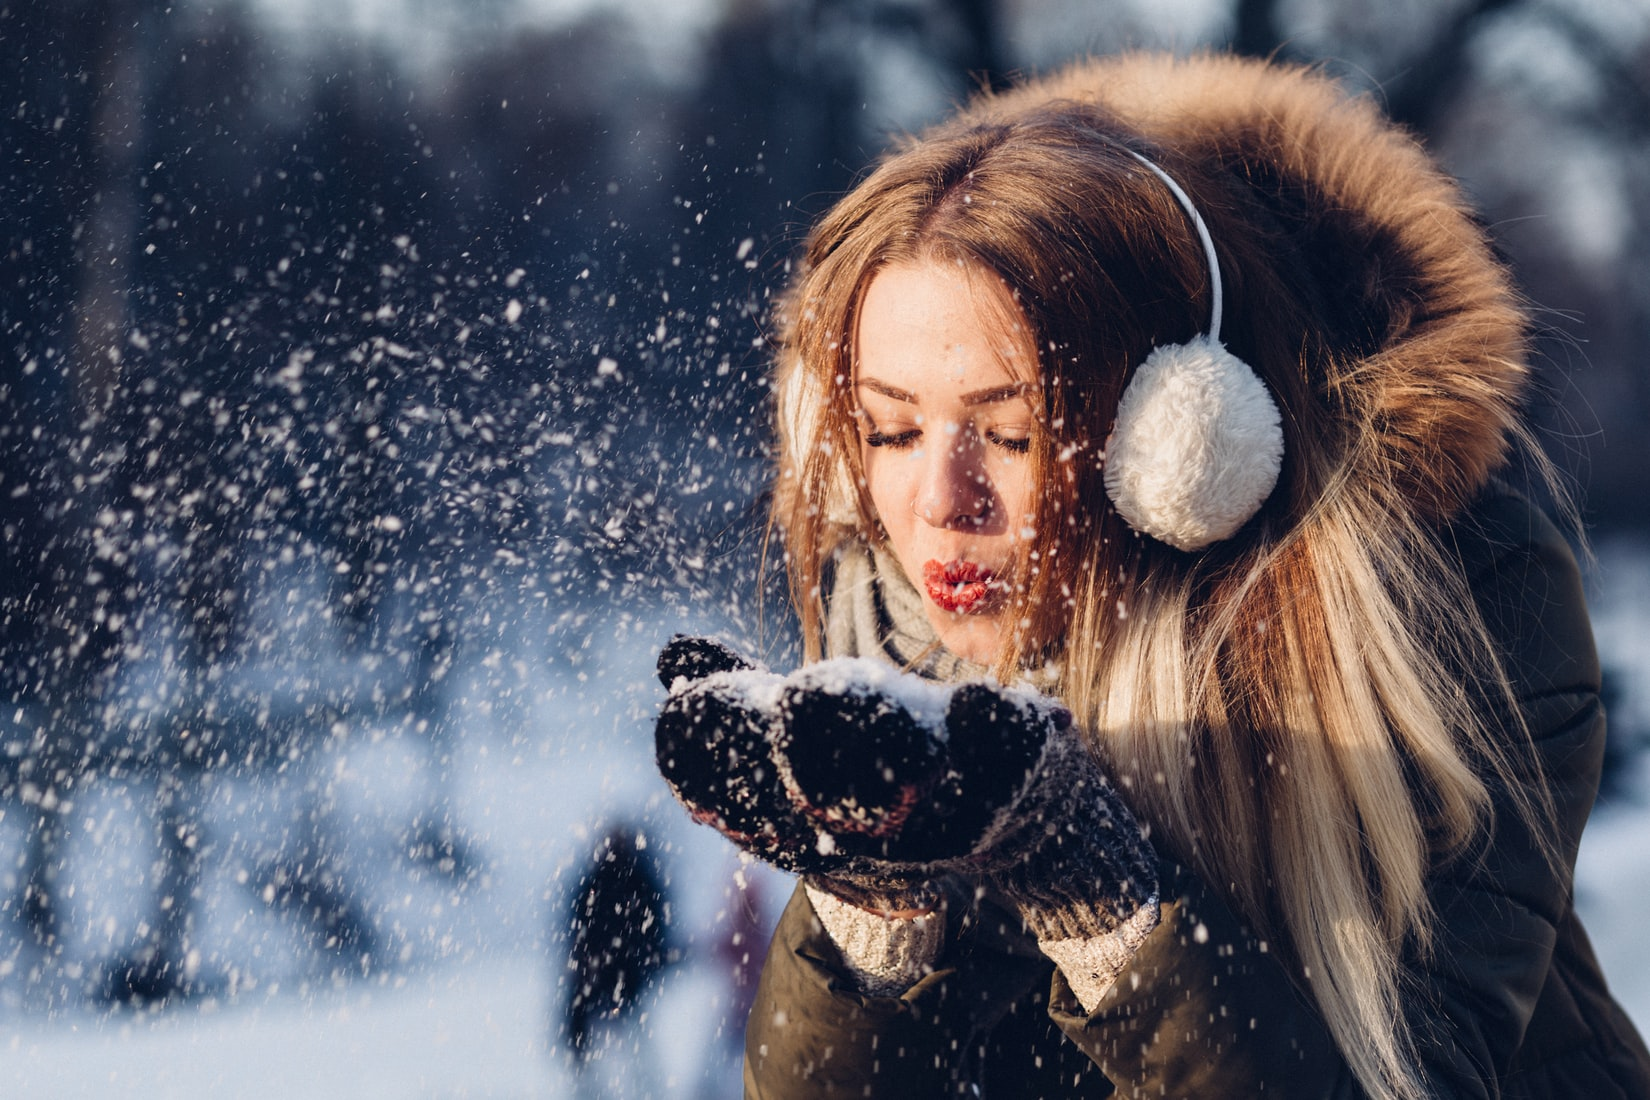 Young brunette woman wearing winter coat and blowing snow on her gloves outdoors